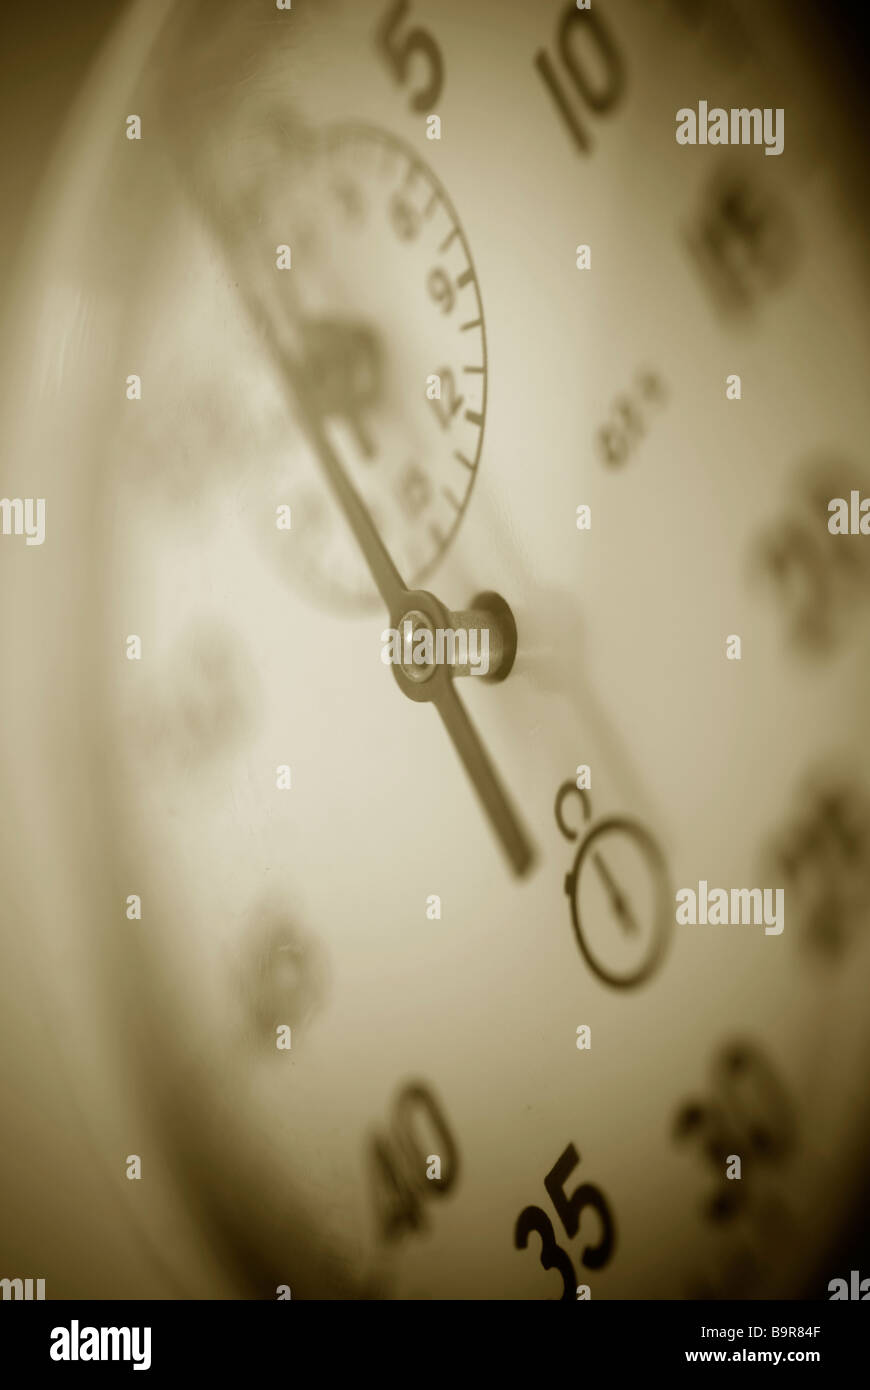 Close up of a stopwatch - Stock Image